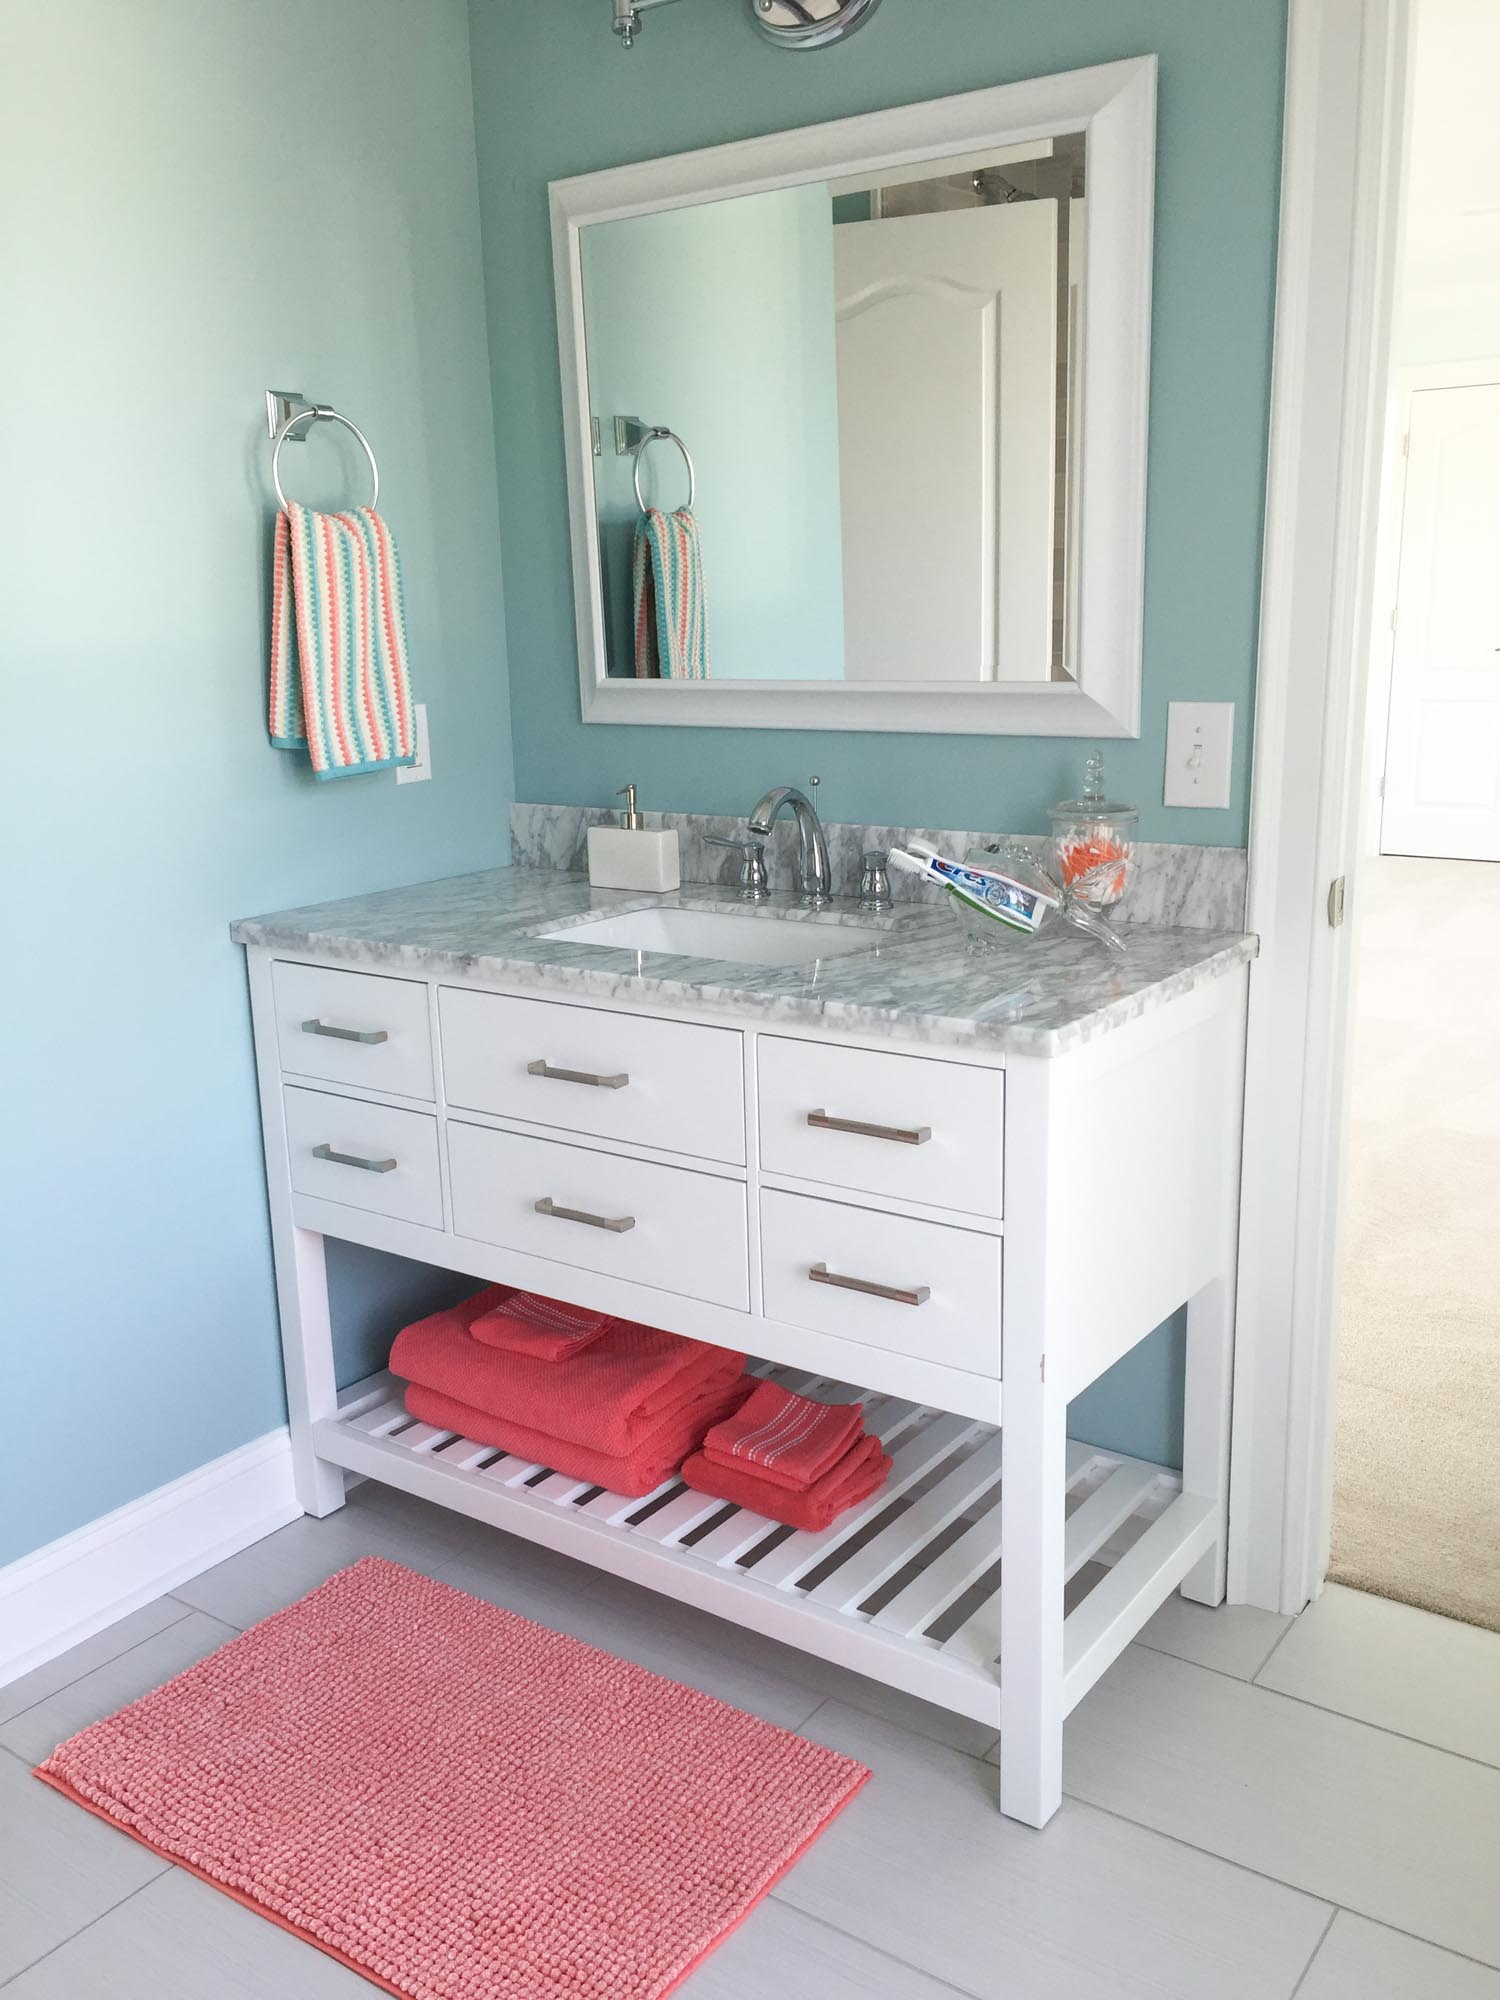 Vanity with coral colored towels and rug